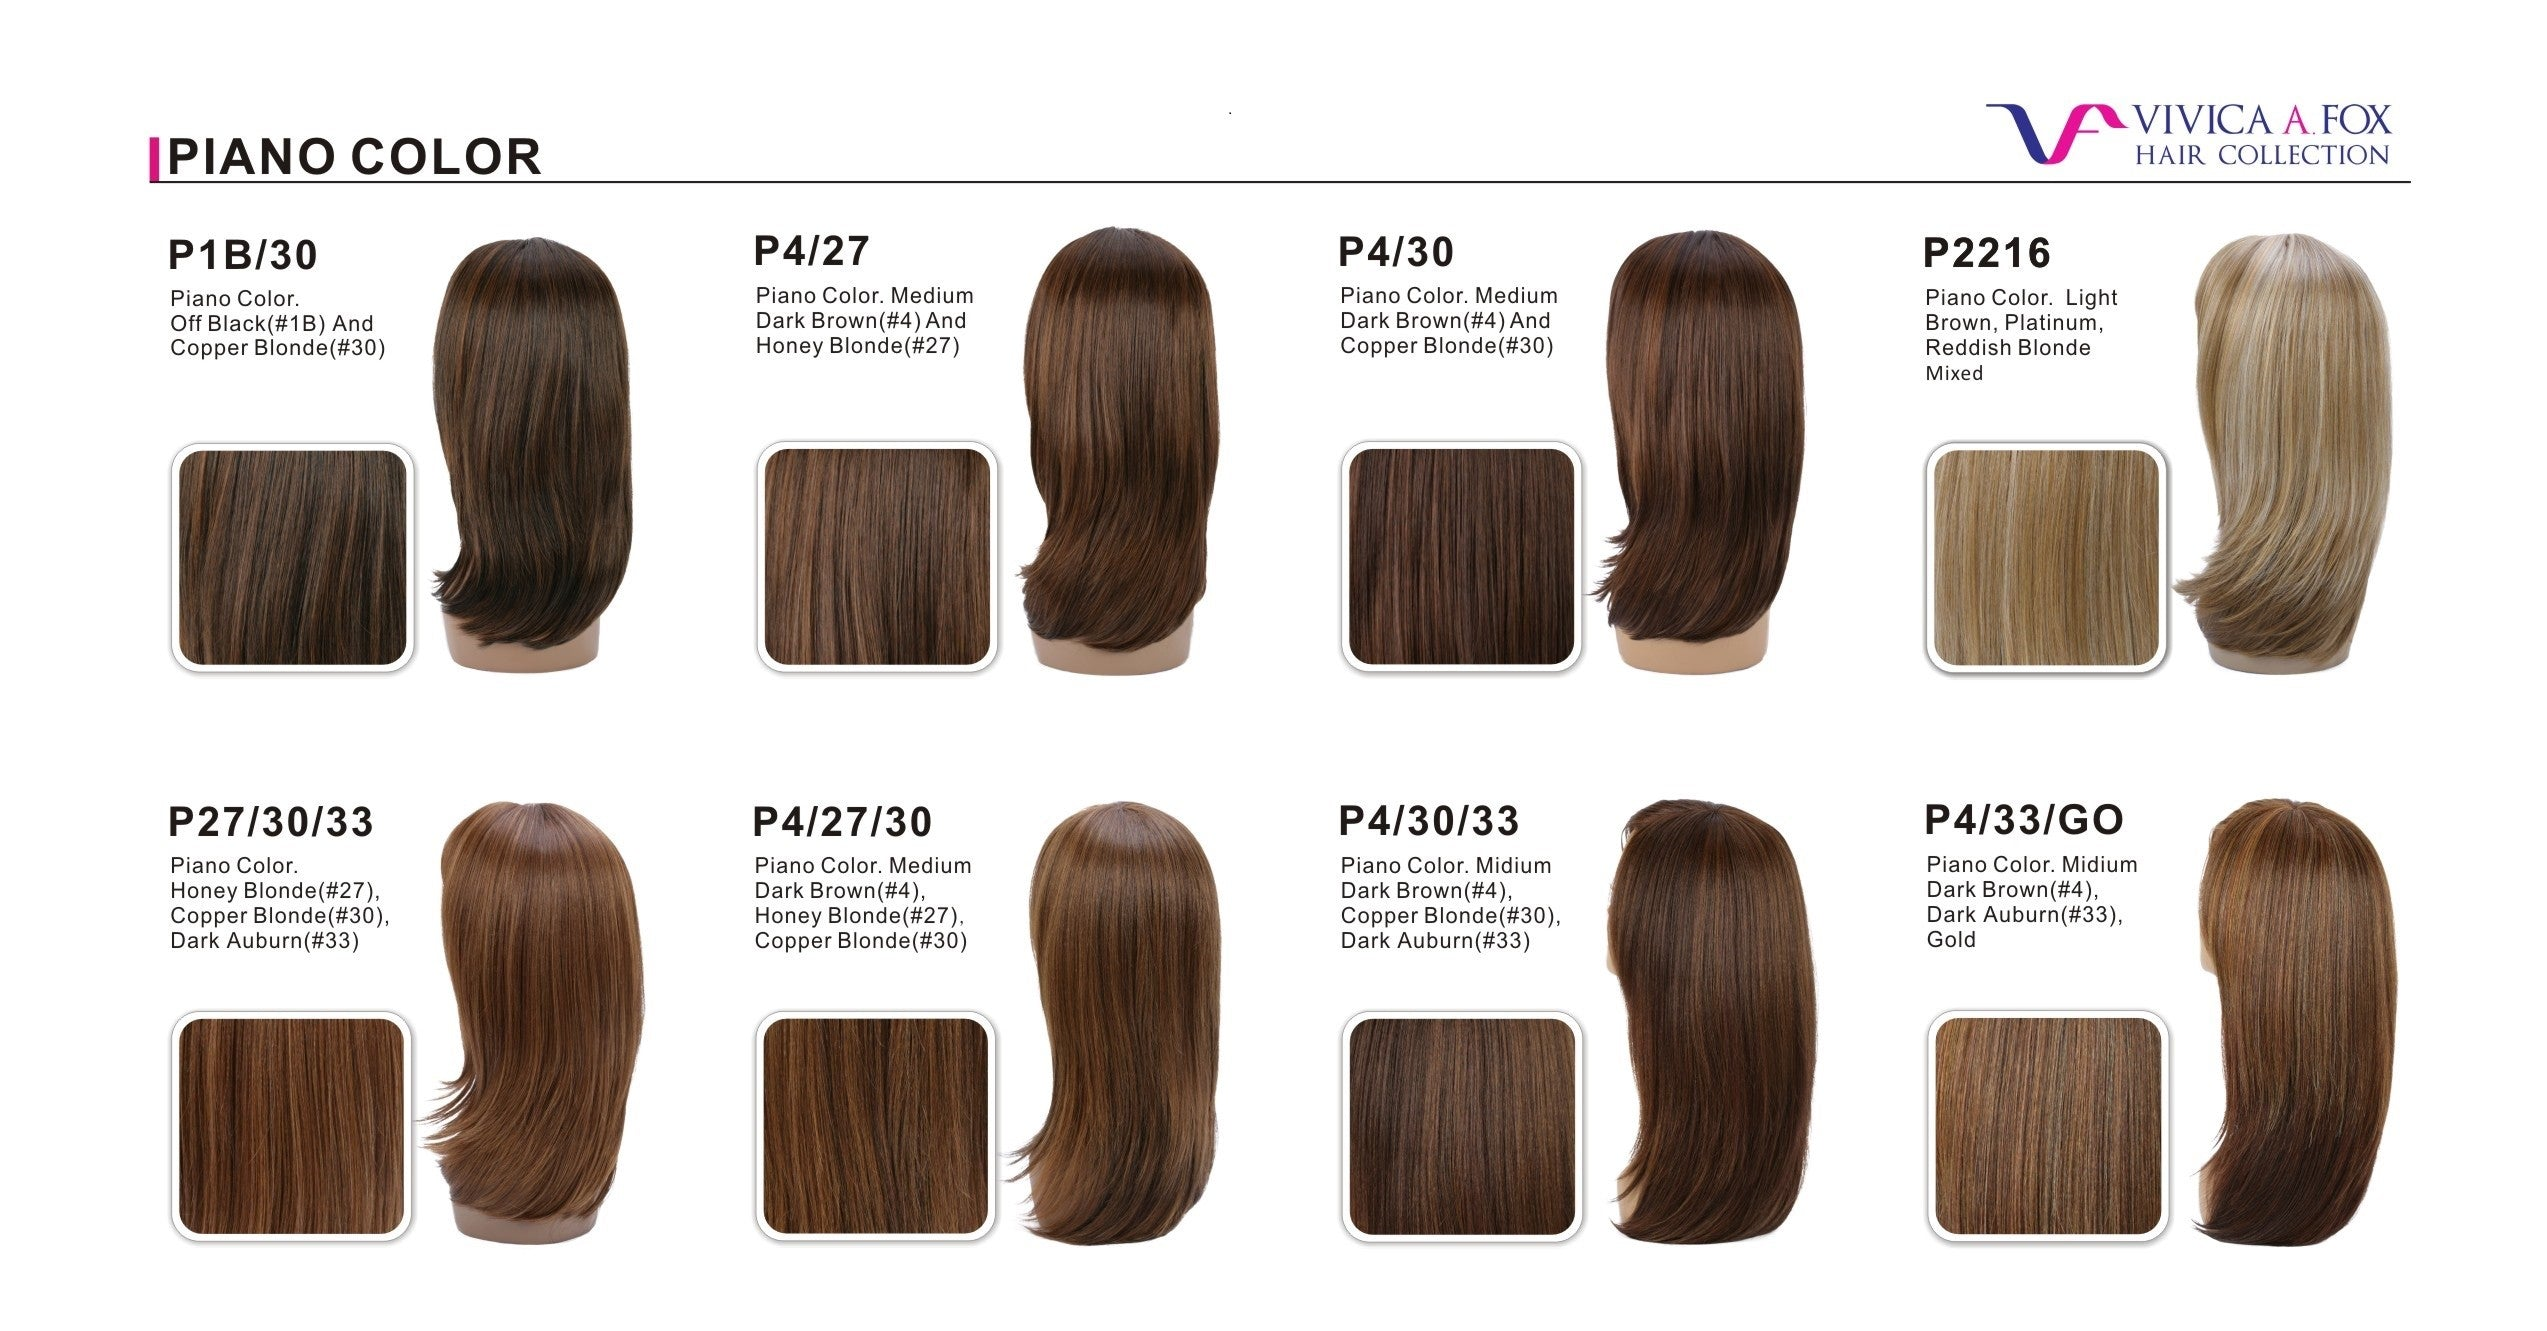 Piano 				 P4/27/30 	P4/30/33 	P4/33/GO 	P27/30/33 	P2216 Medium Dark Brown (#4), Honey Blonde (#27), Copper Blonde (#30) 	Medium Dark Brown (#4), Copper Blonde (#30), Dark Auburn (#33) 	Medium Dark Brown (#4), Dark Auburn (#33), Gold Color 	Honey Blonde (#27), Copper Blonde (#30), Dark Auburn (#33) 	Light Brown, Platinum, Reddish Blonde Mixed